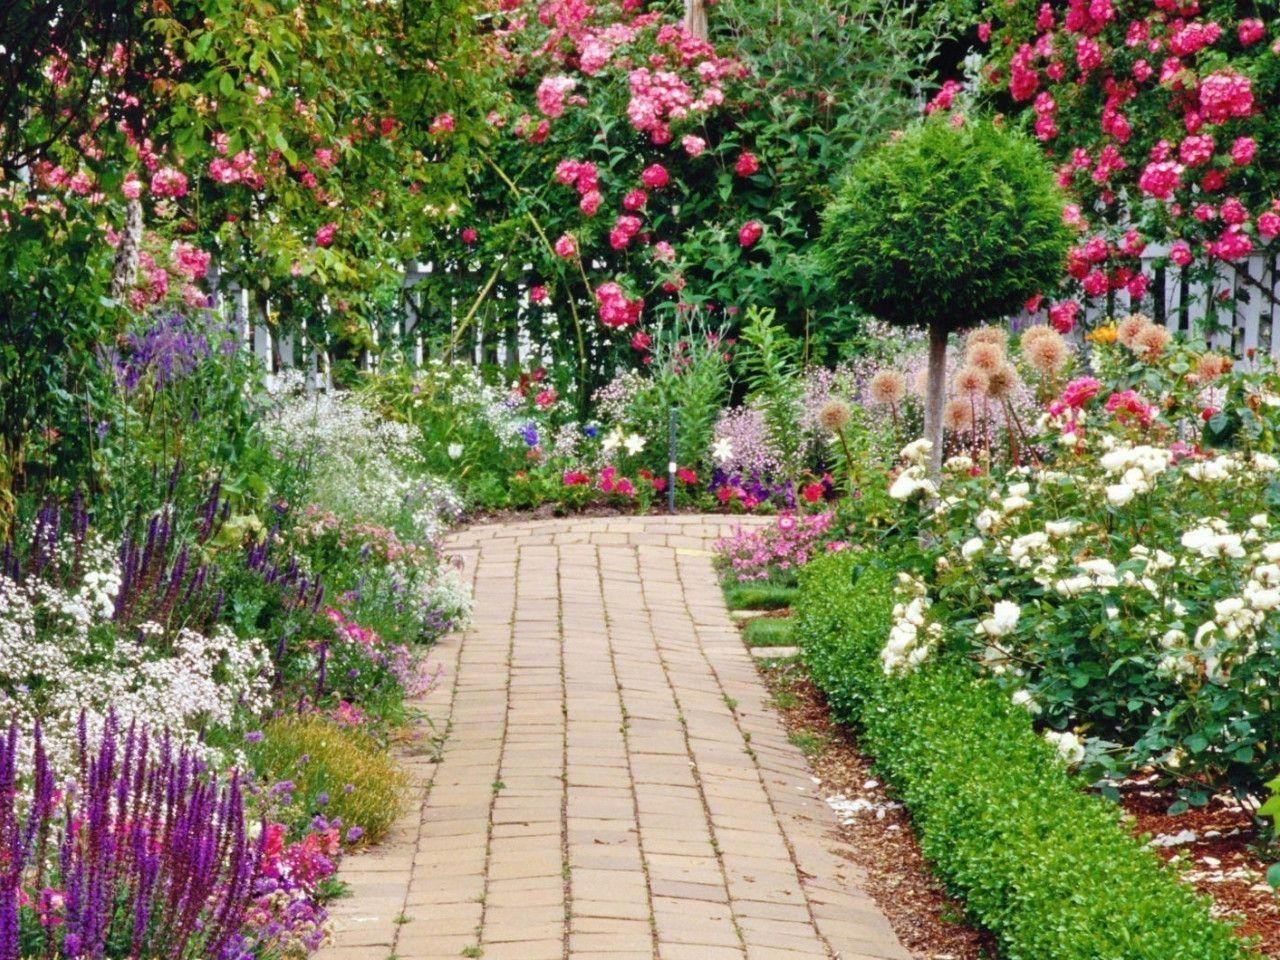 flower garden backgrounds wallpaper cave hd background hd background